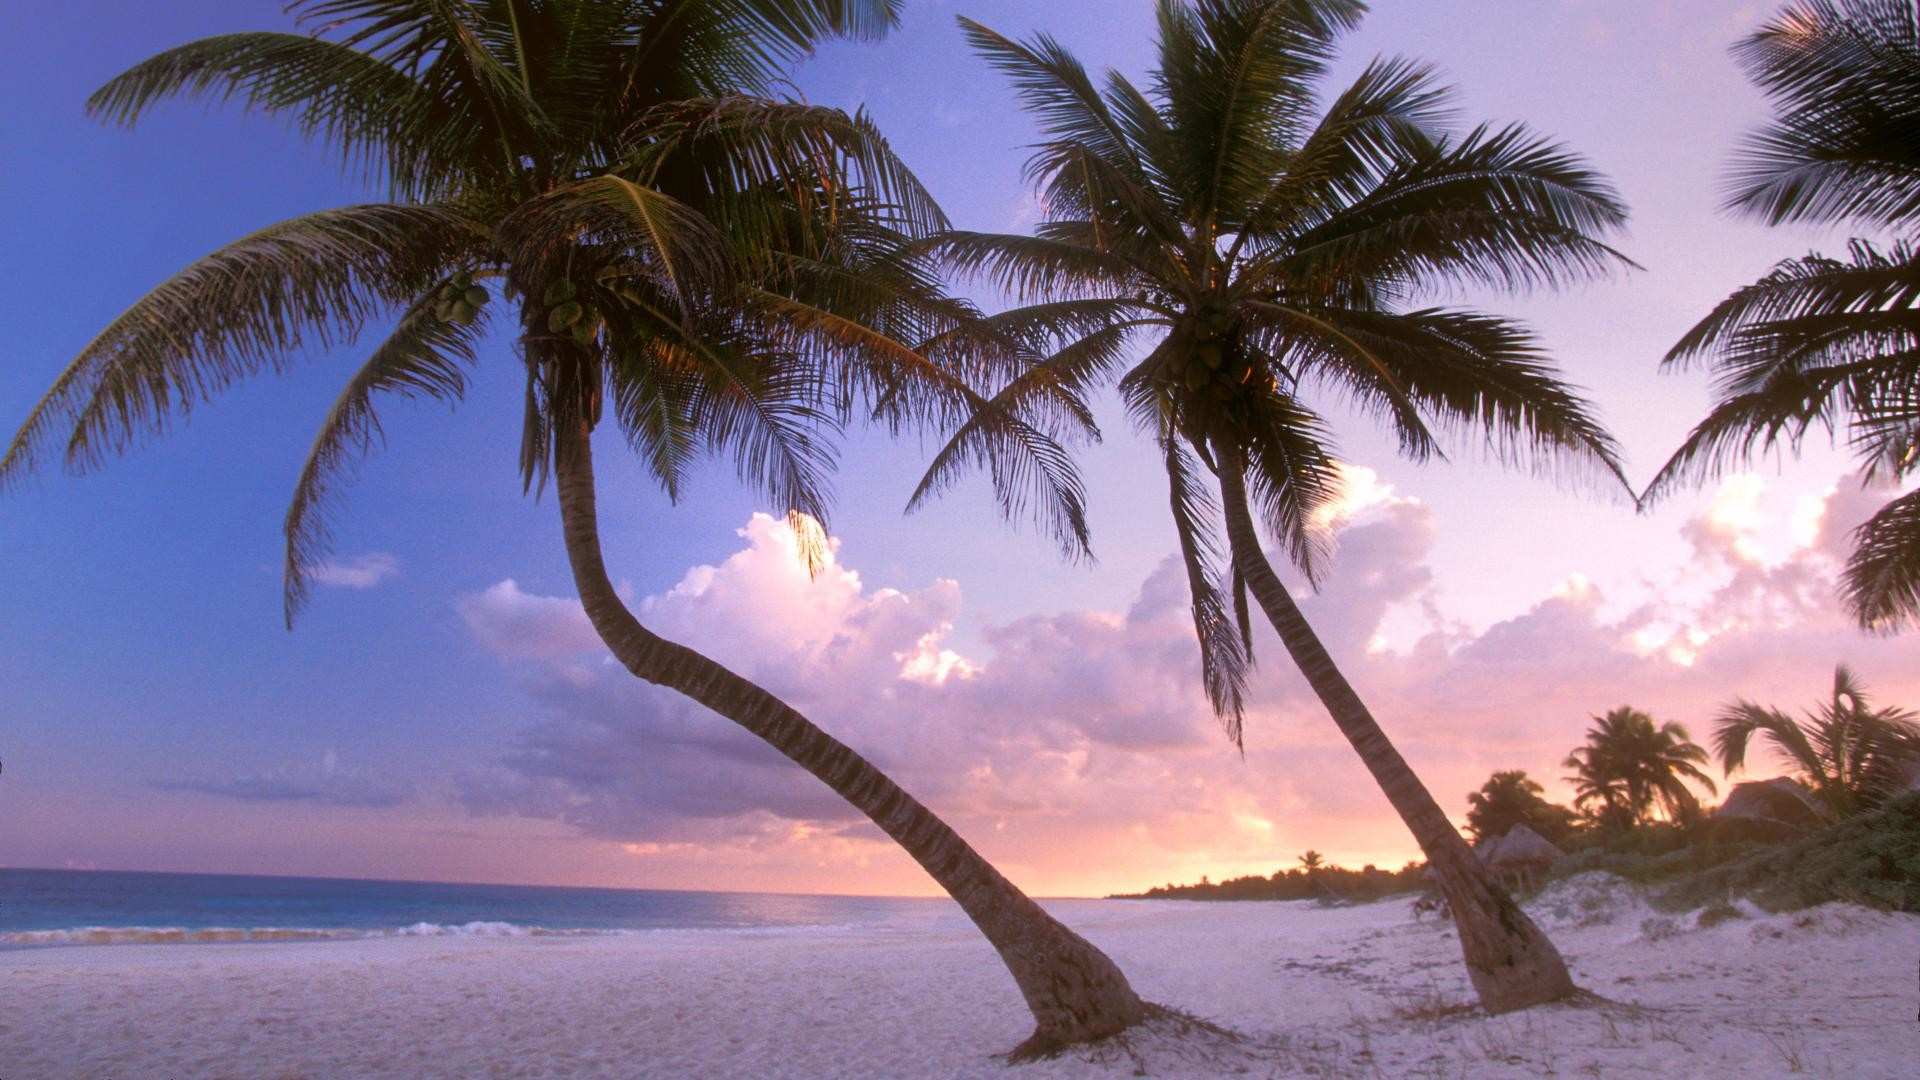 background, cool, wallpapers, mexico, sways, backgrounds,